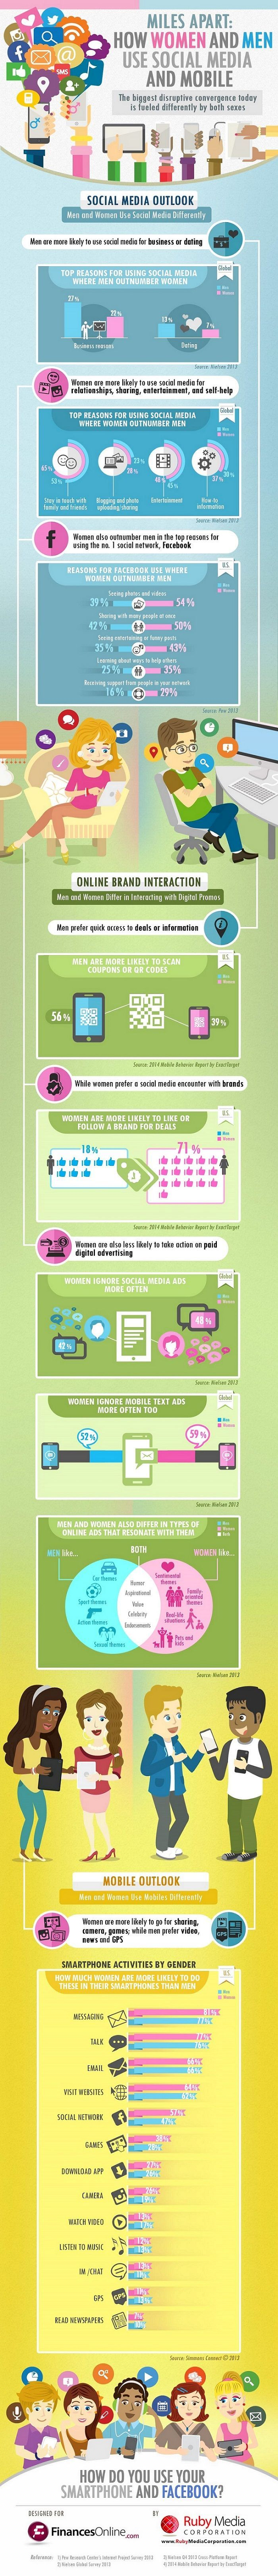 Customer Behavior - How Women and Men Use Social Media and Mobile [Infographic] : MarketingProfs Article